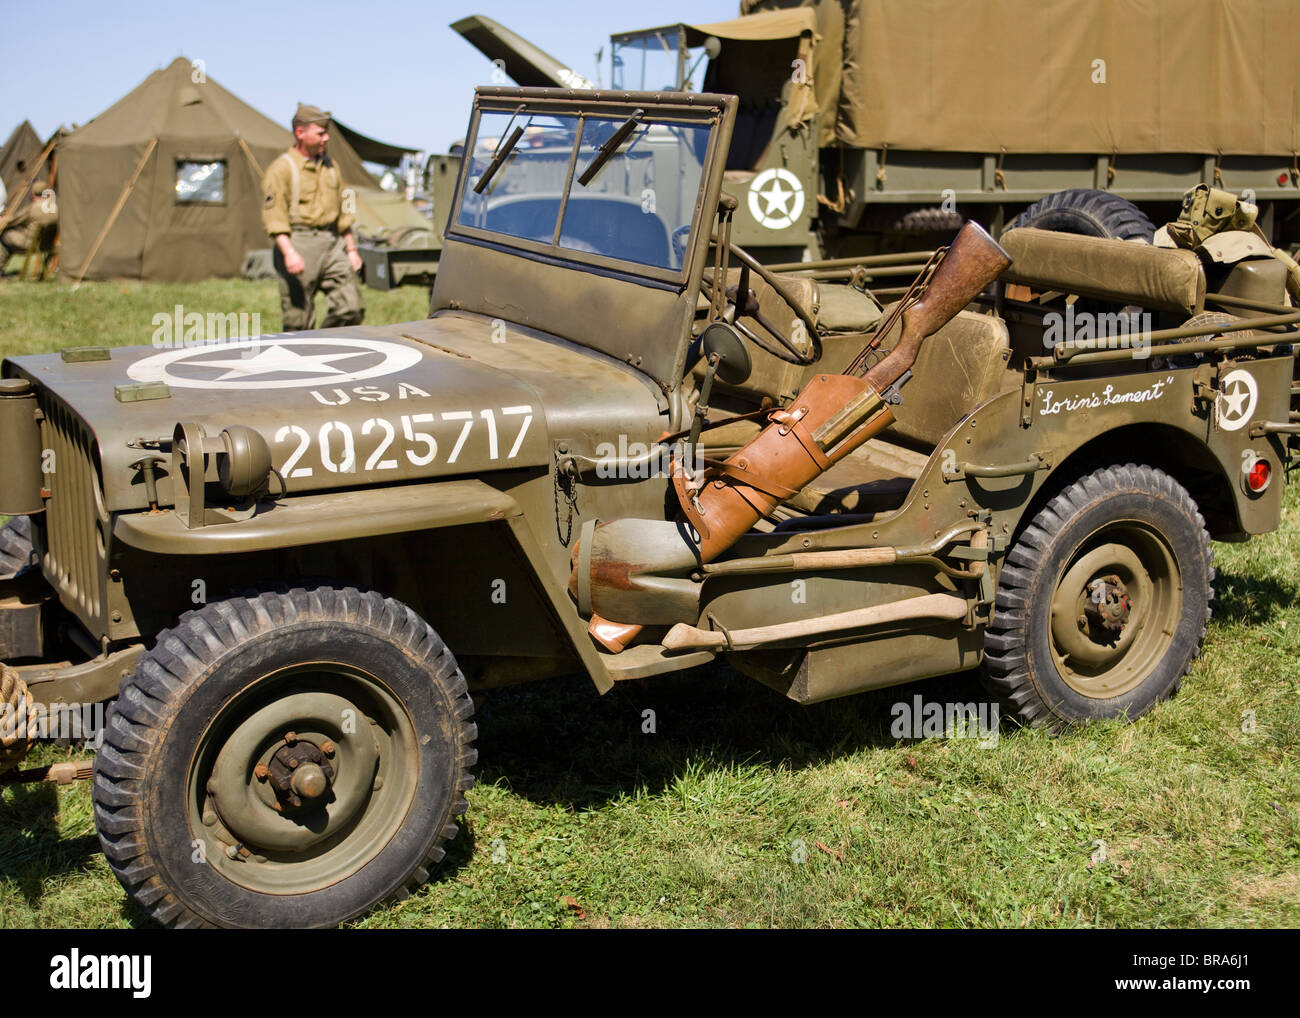 wwii era us army willys jeep stock photo royalty free image 31572185 alamy. Black Bedroom Furniture Sets. Home Design Ideas